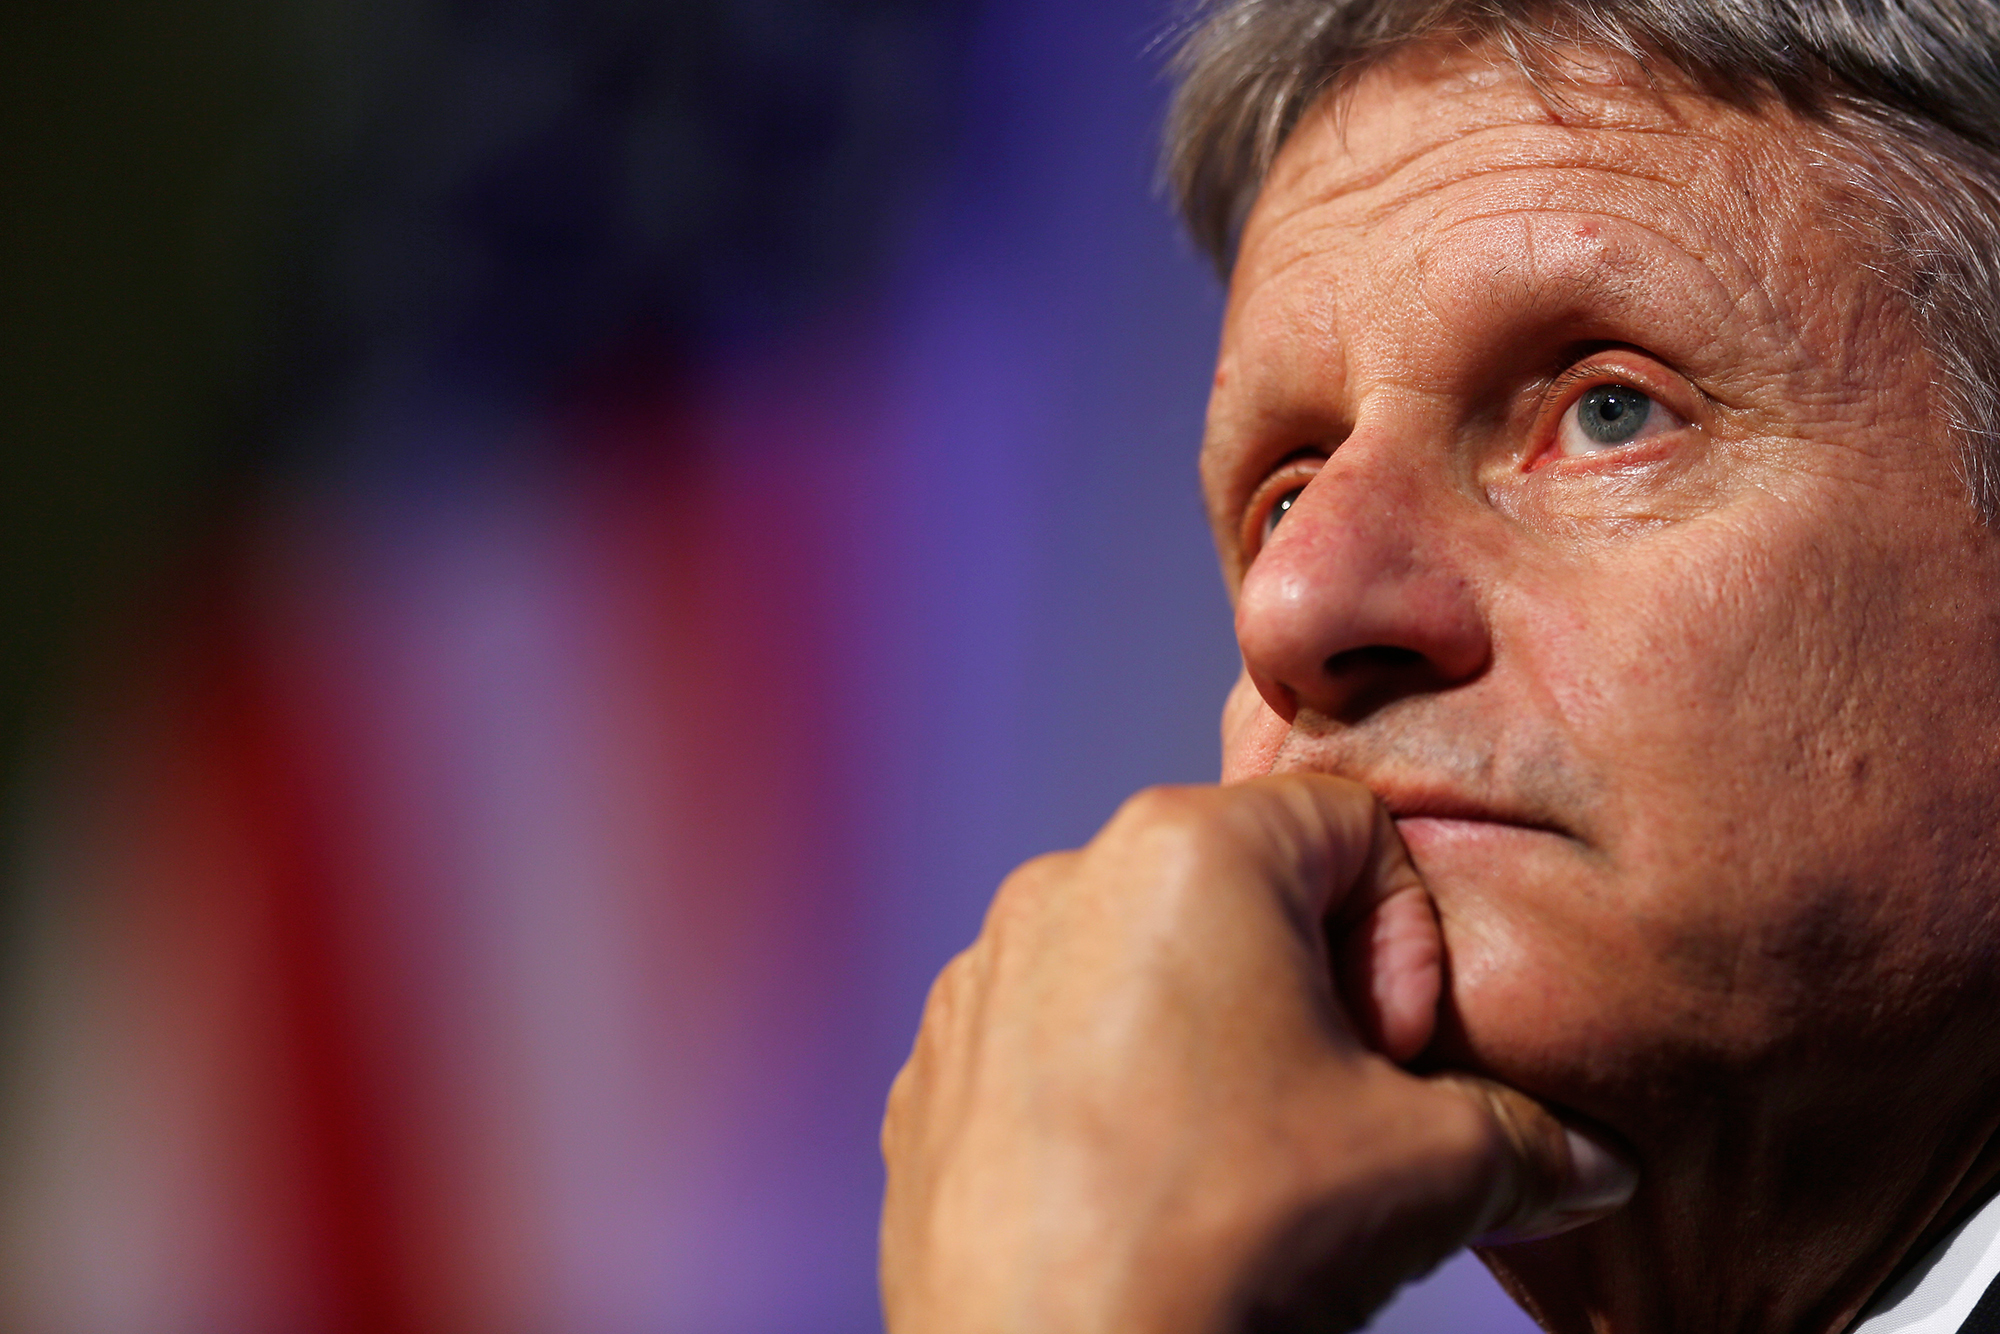 Gary Johnson, 2016 Libertarian presidential nominee, listens to questions from audience members during a campaign event at Purdue University in West Lafayette, Ind., on Sept. 13, 2016.